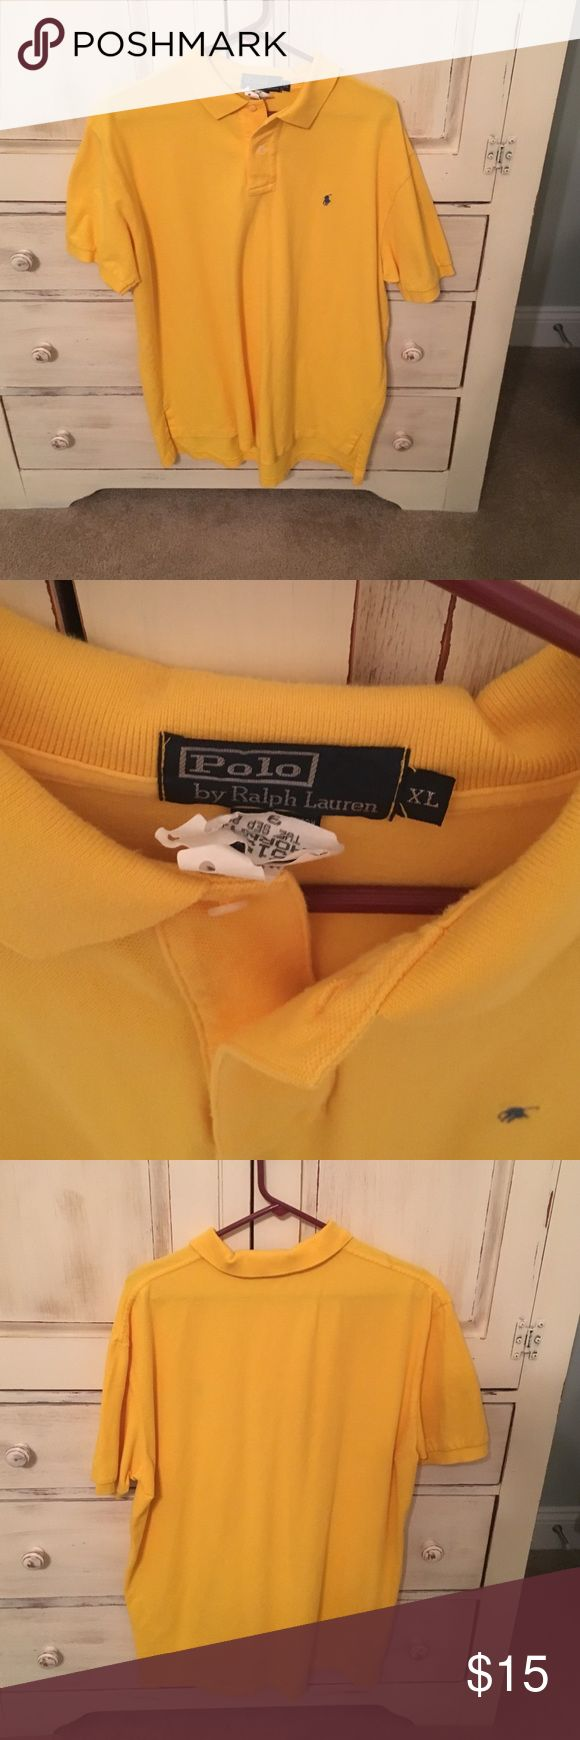 Men's short sleeve polo by polo Ralph Lauren Yellow short sleeve polo by polo Ralph Lauren. Lightly worn with no significant signs of wear- recently cleaned as shown on tag Polo by Ralph Lauren Shirts Polos